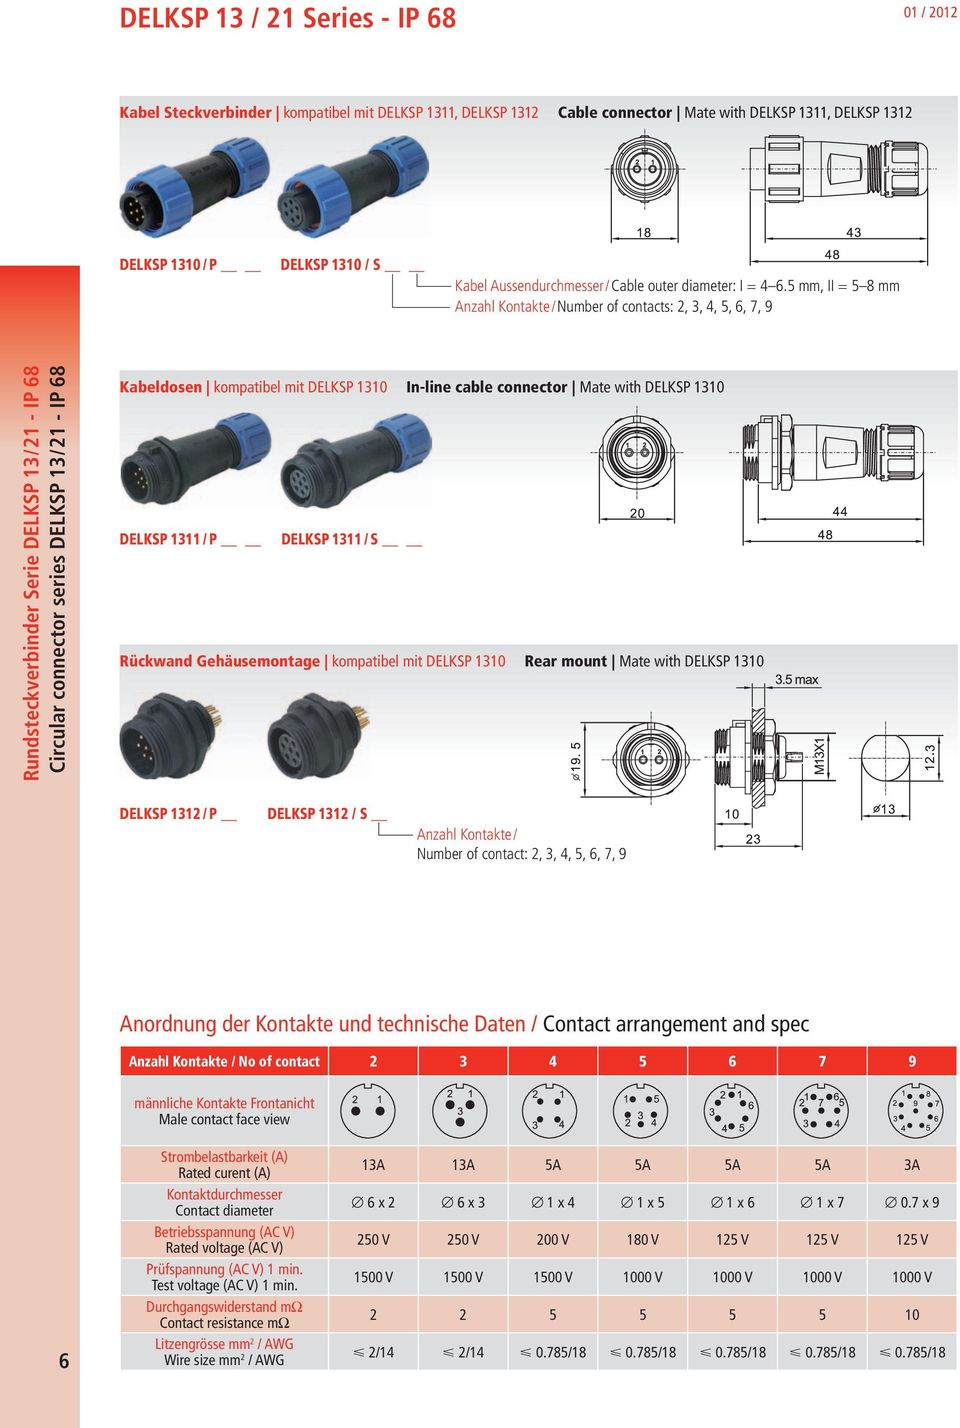 5 mm, II = 5 8 mm Anzahl Kontakte/ Number of contacts: 2, 3, 4, 5, 6, 7, 9 Rundsteckverbinder Serie DELKSP 13 / 21 - IP 68 Circular connector series DELKSP 13 / 21 - IP 68 Kabeldosen kompatibel mit